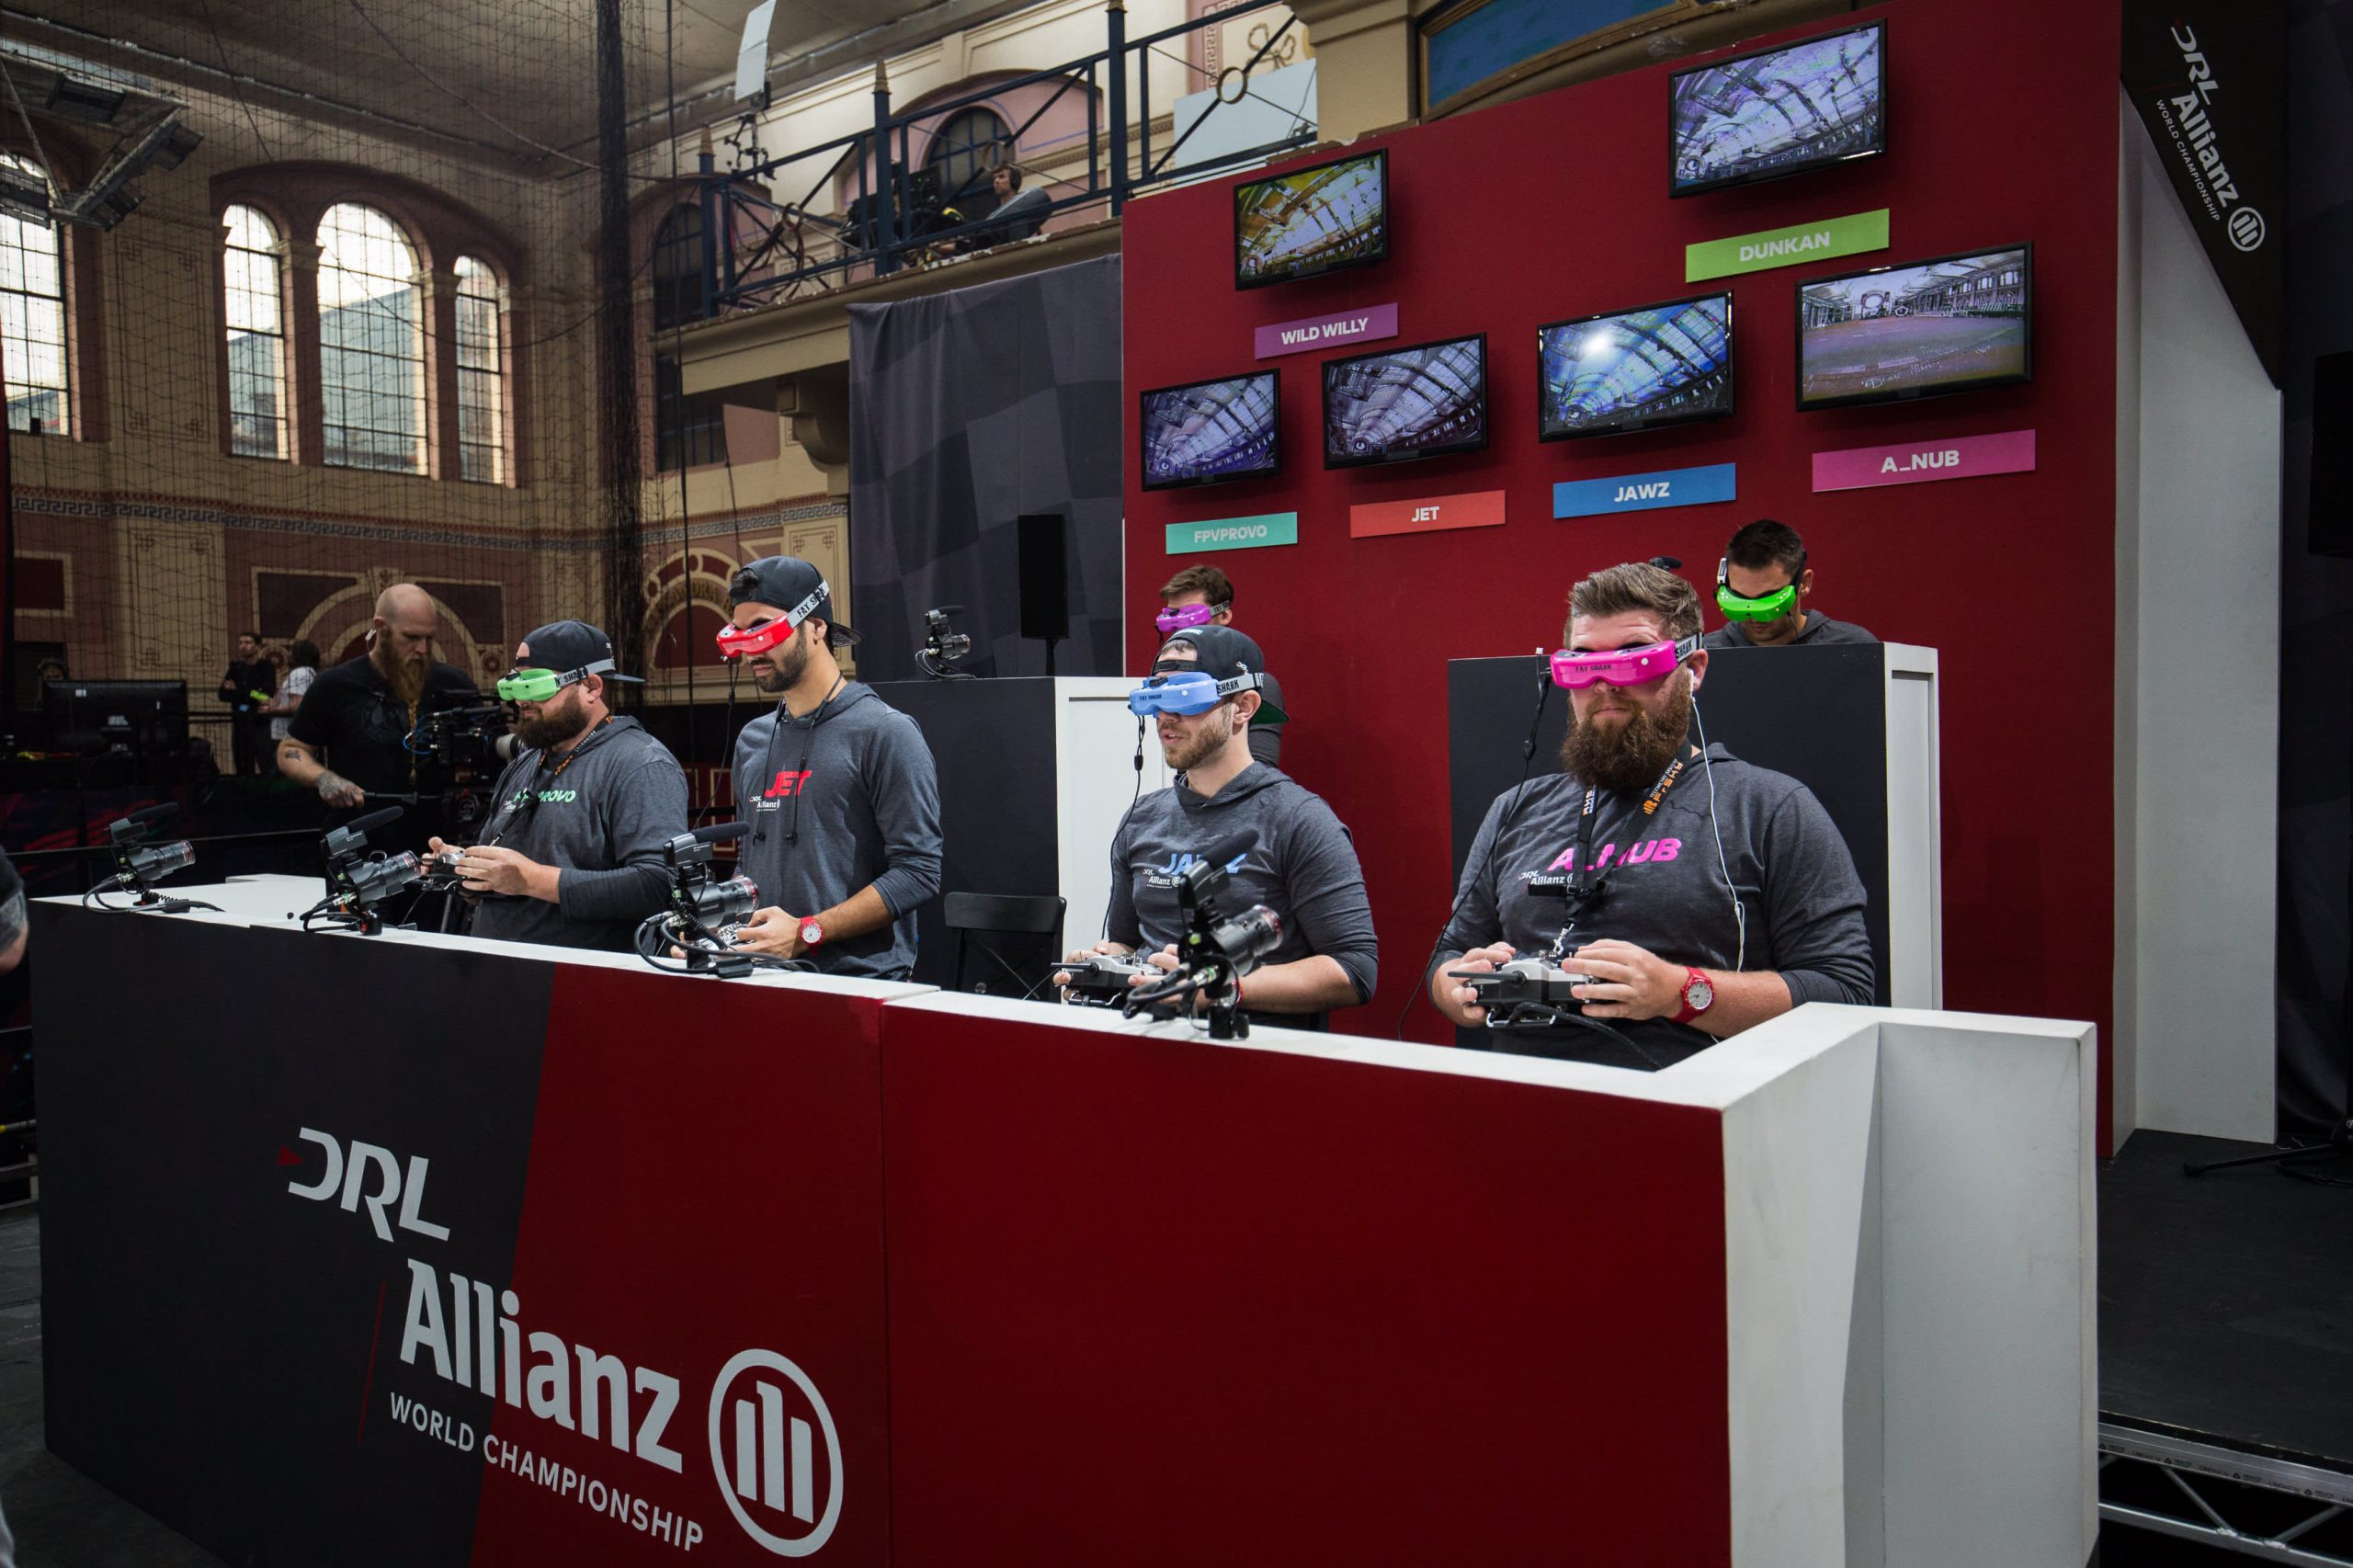 draftkings-drone-racing-league-partnership-lets-you-bet-on-drone-races